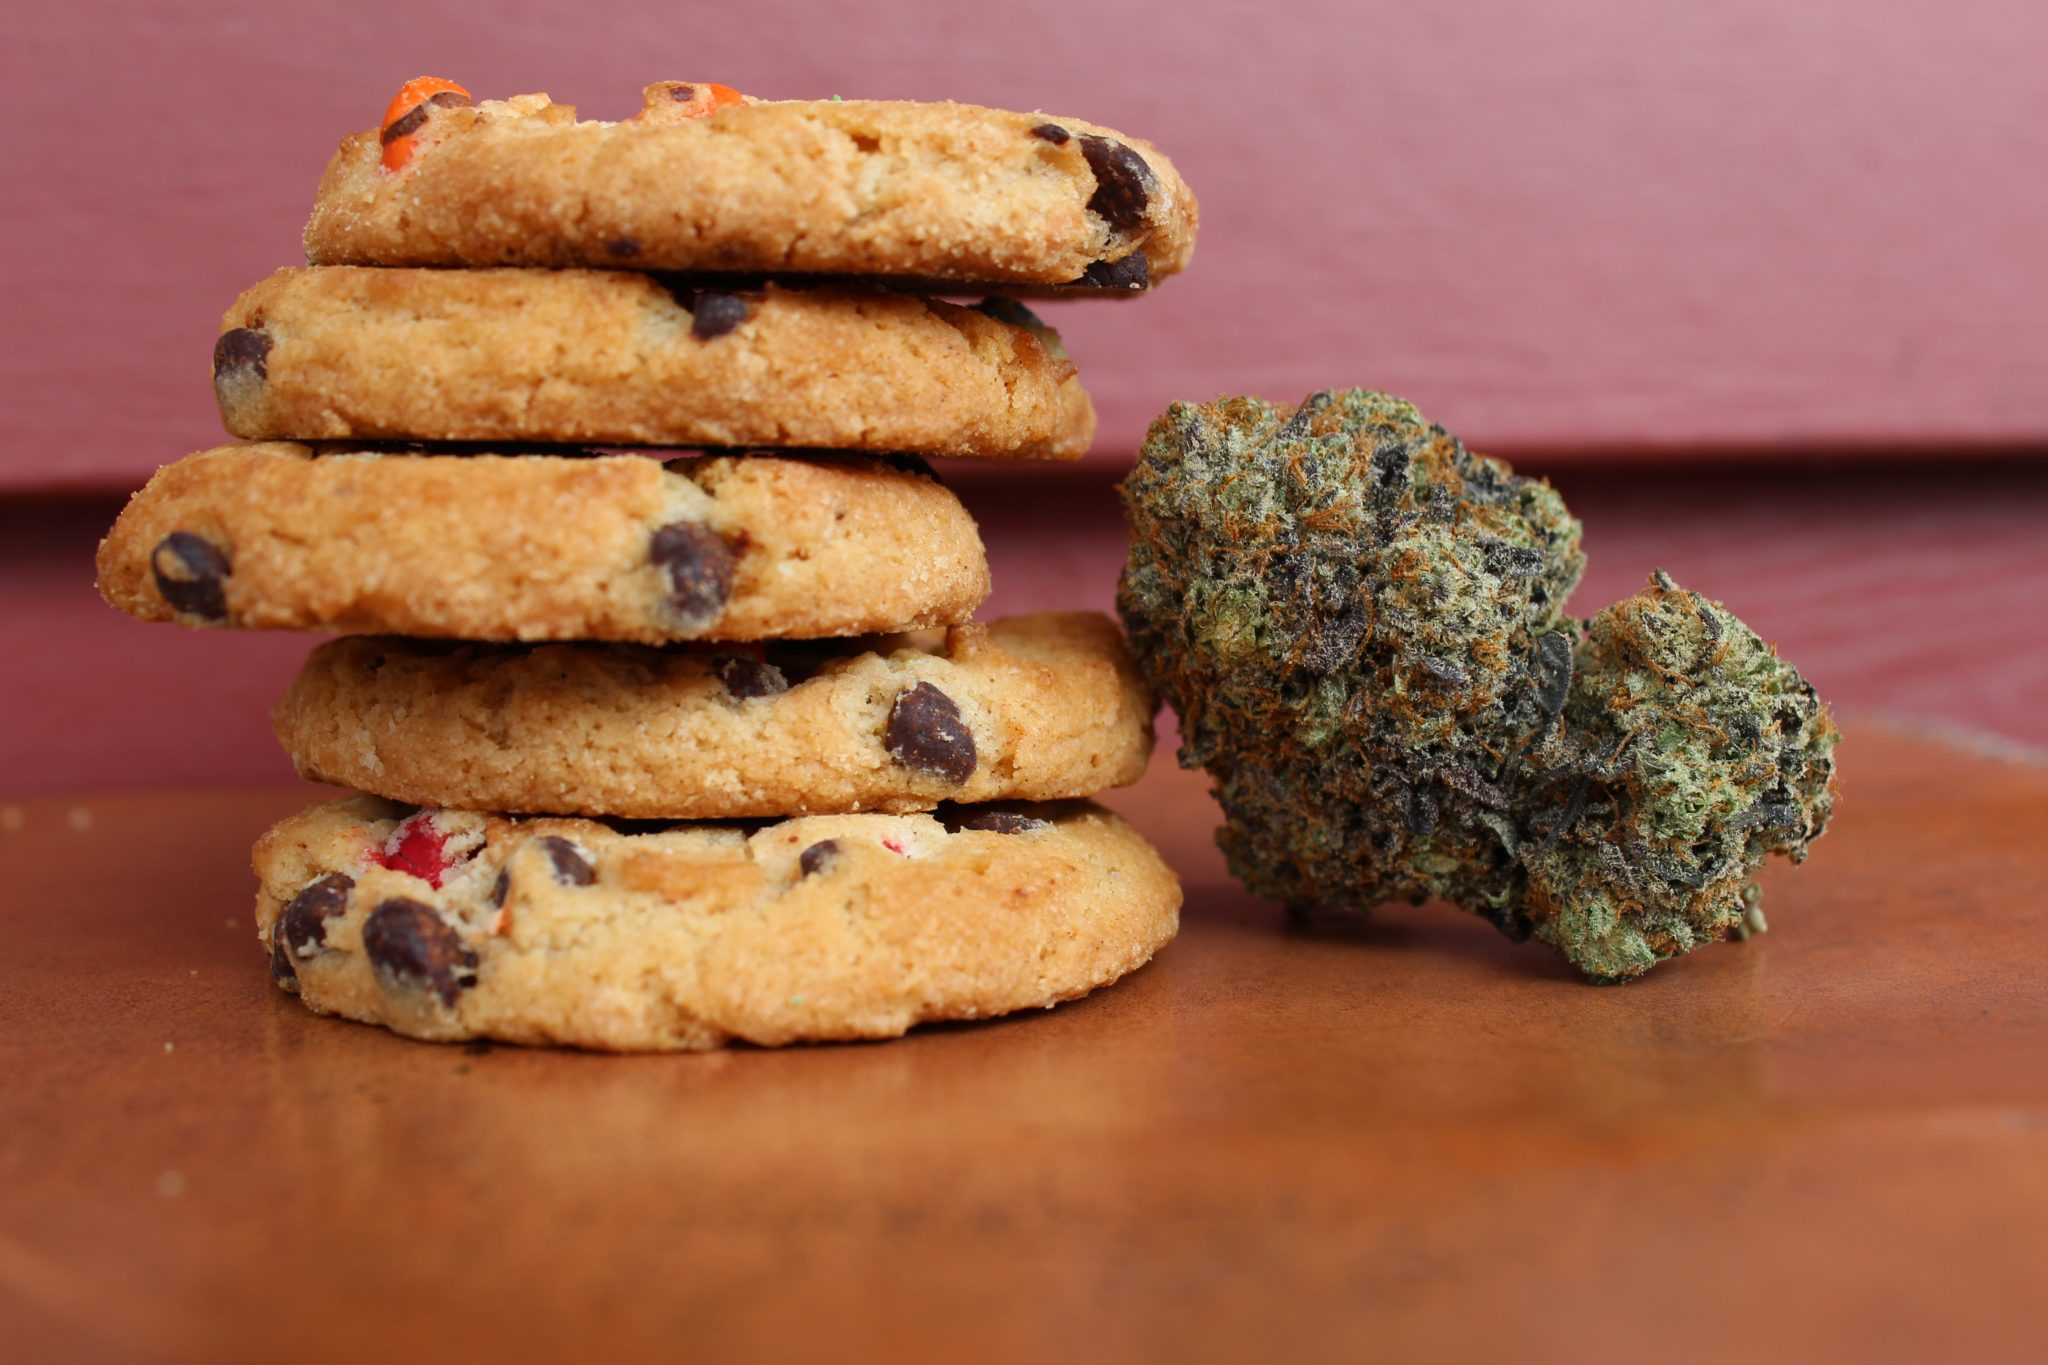 where to buy edibles in seattle